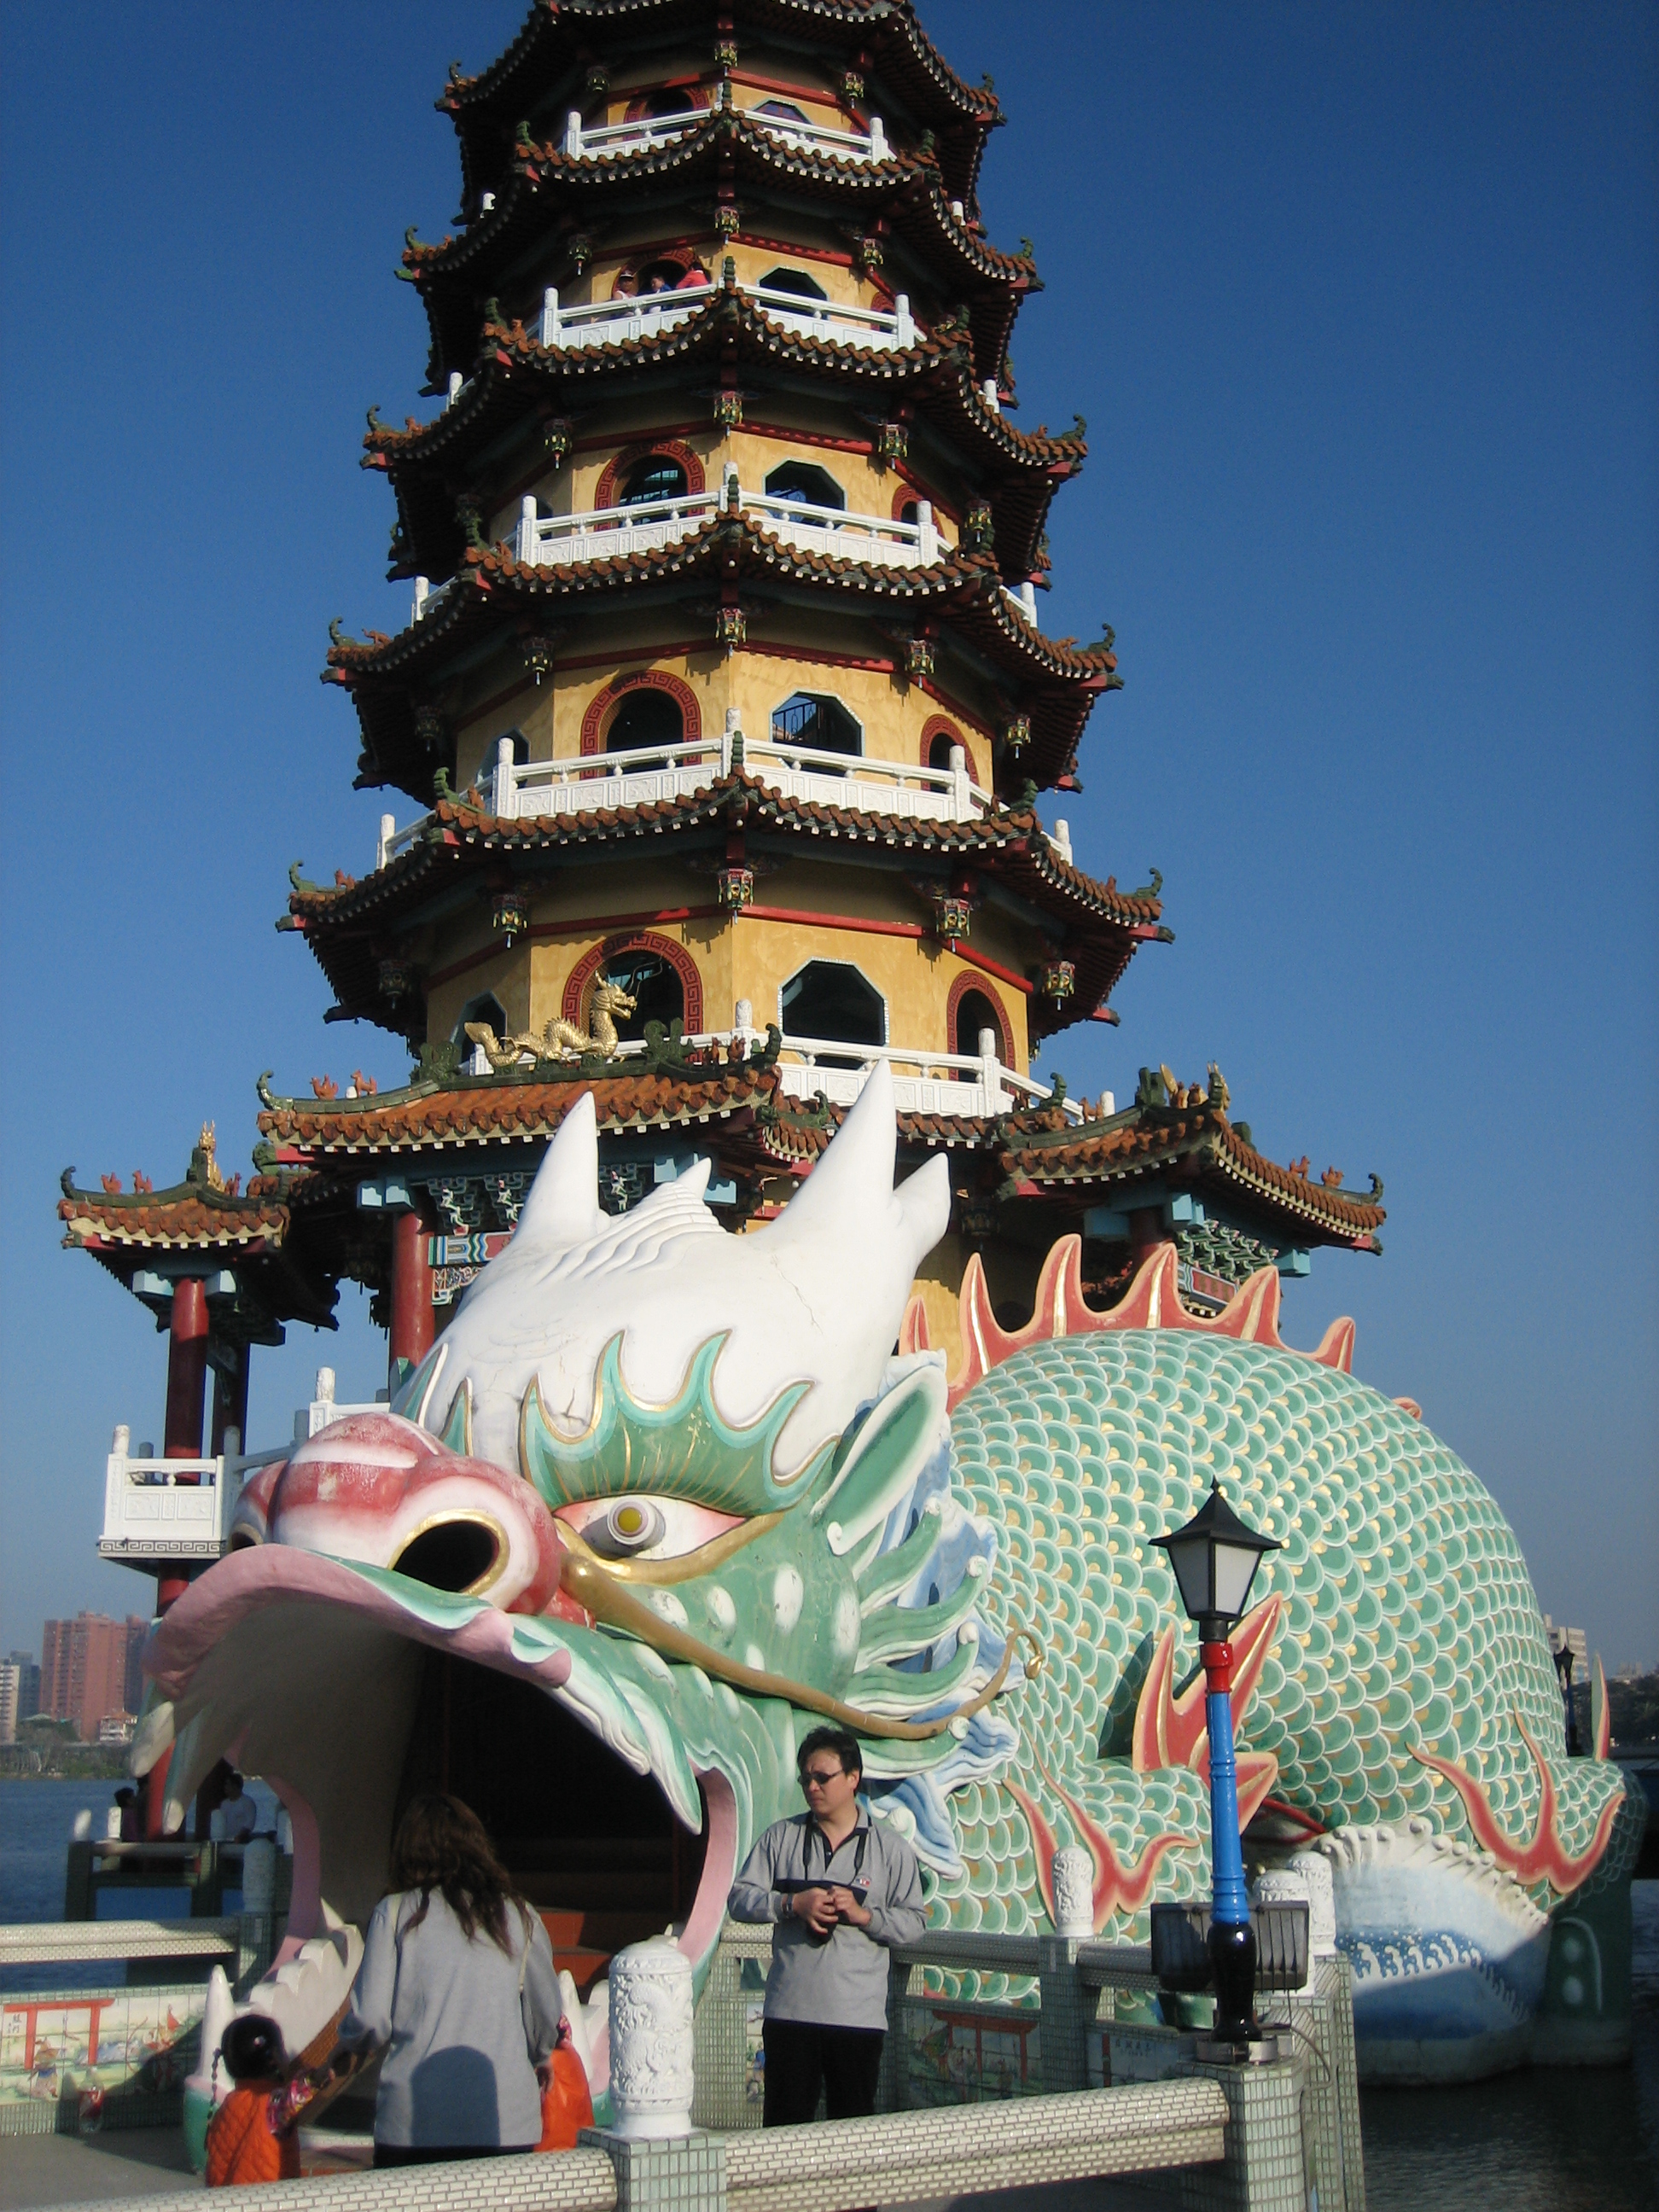 Dragon tower in Kaohsiung